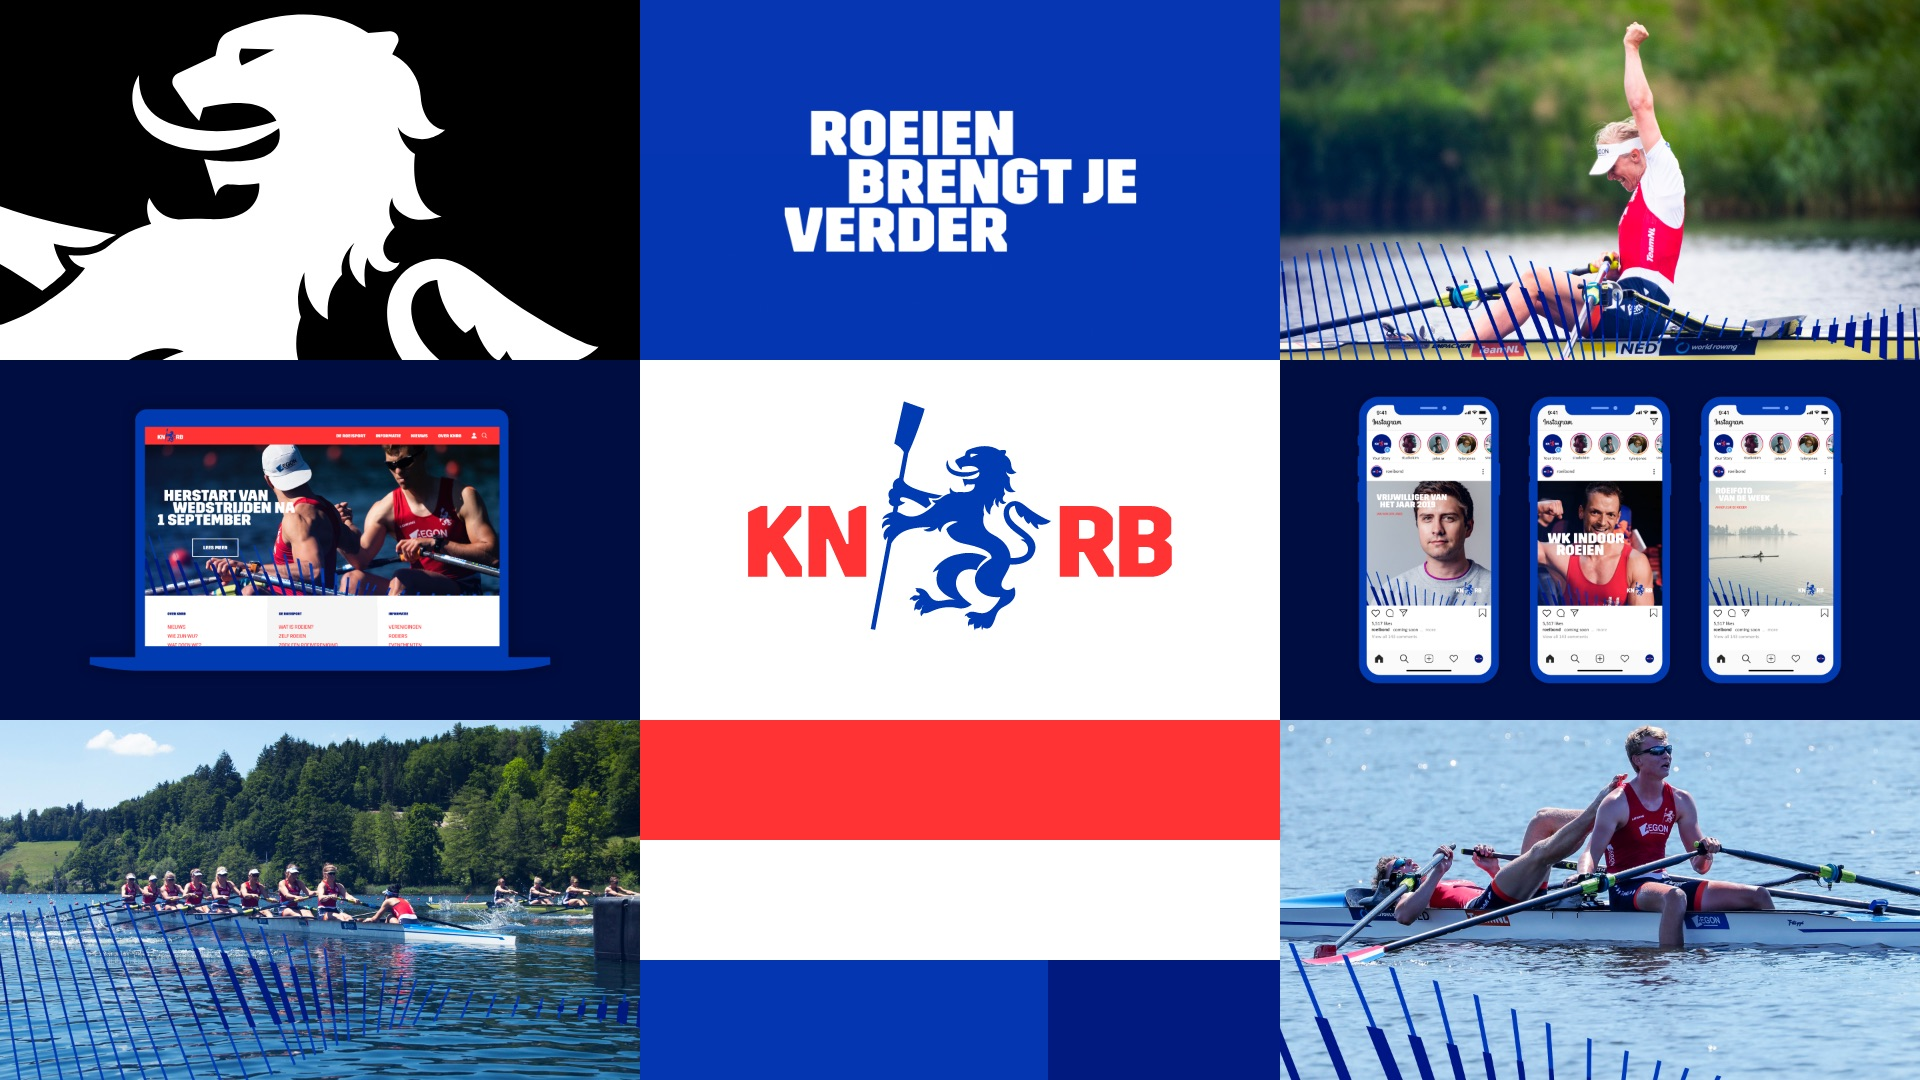 A new roar for the Royal Dutch Rowing Federation (KNRB)